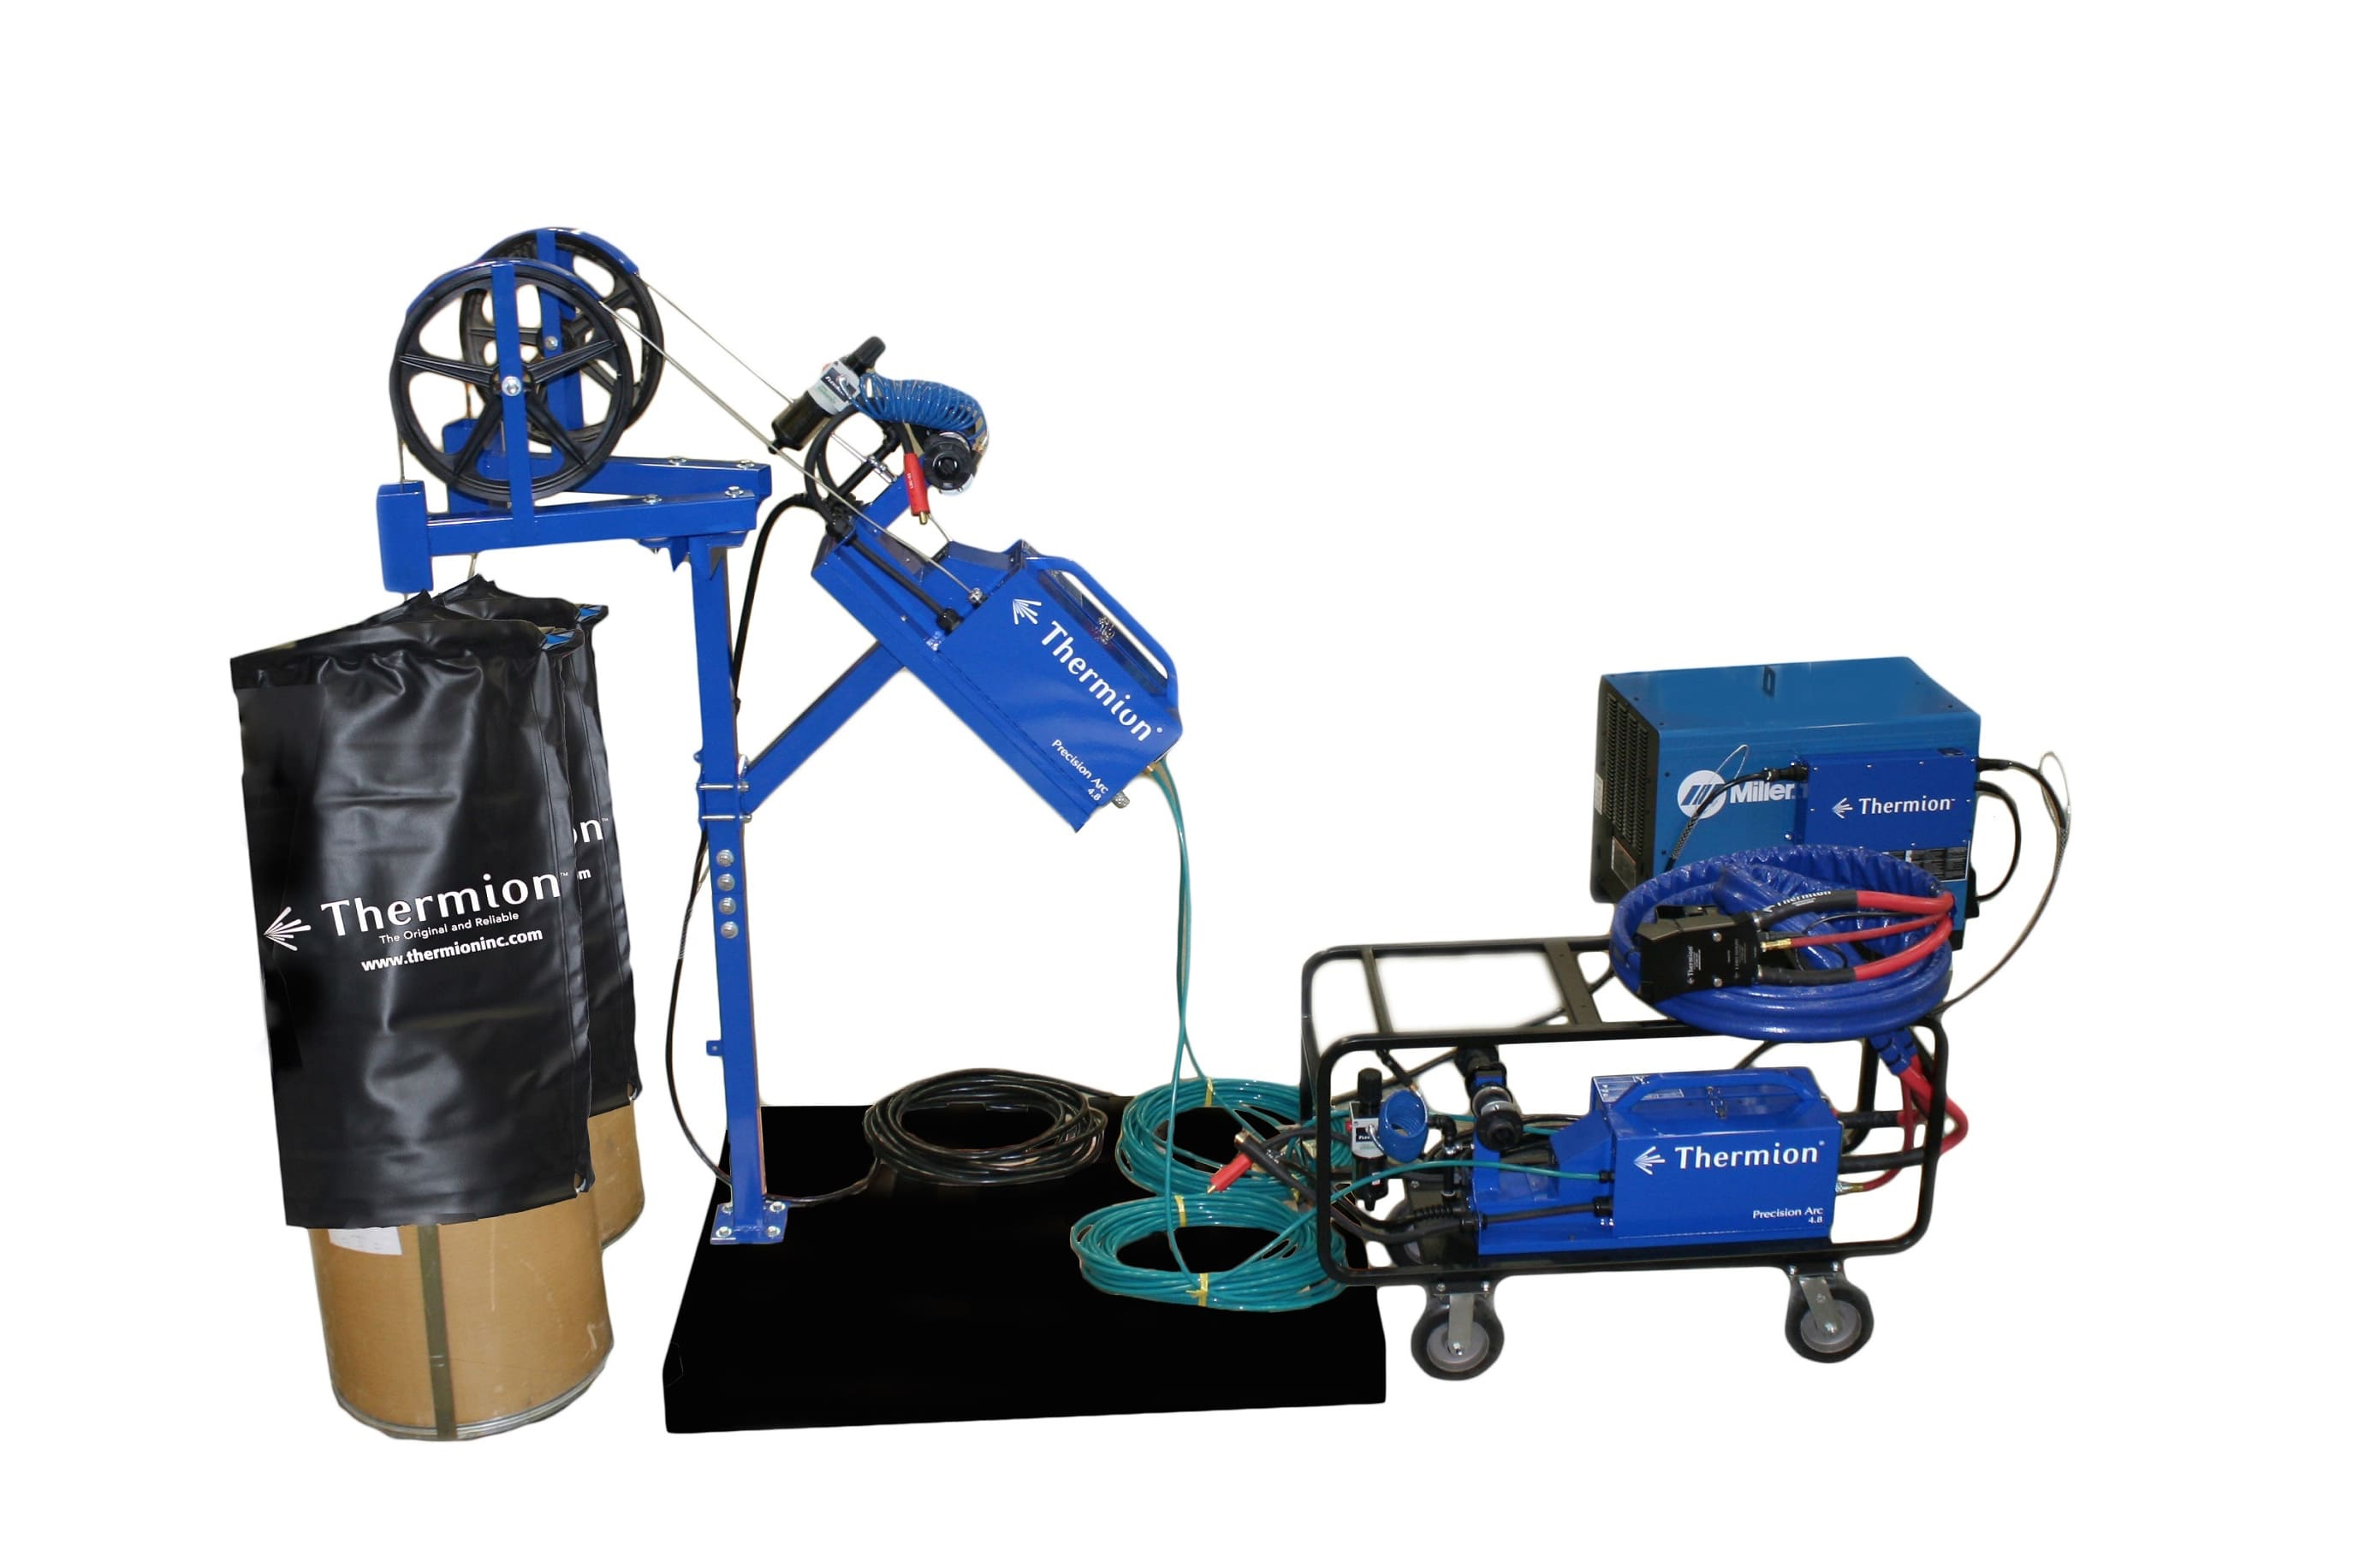 Thermal Spray Welding Systems